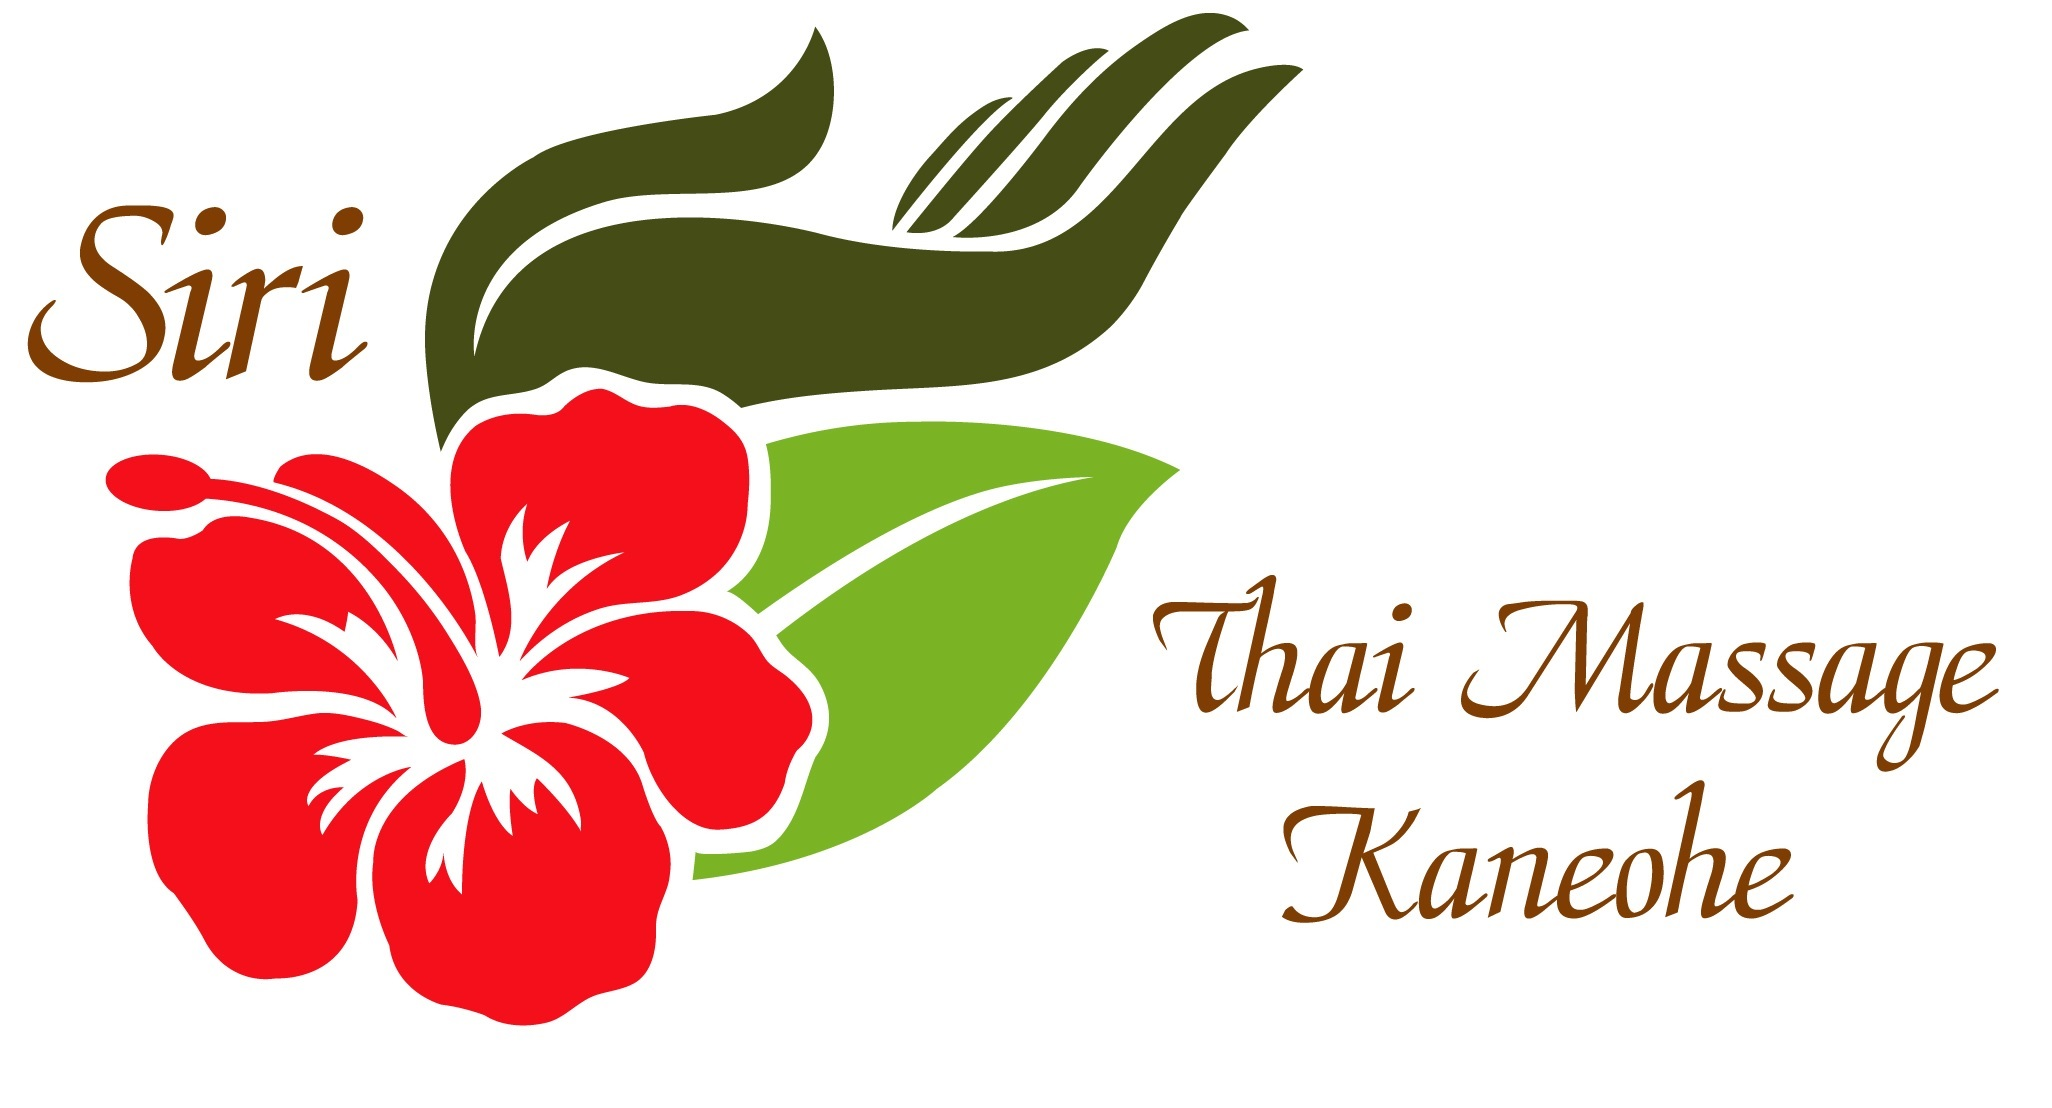 Siri Thai Massage Kaneohe